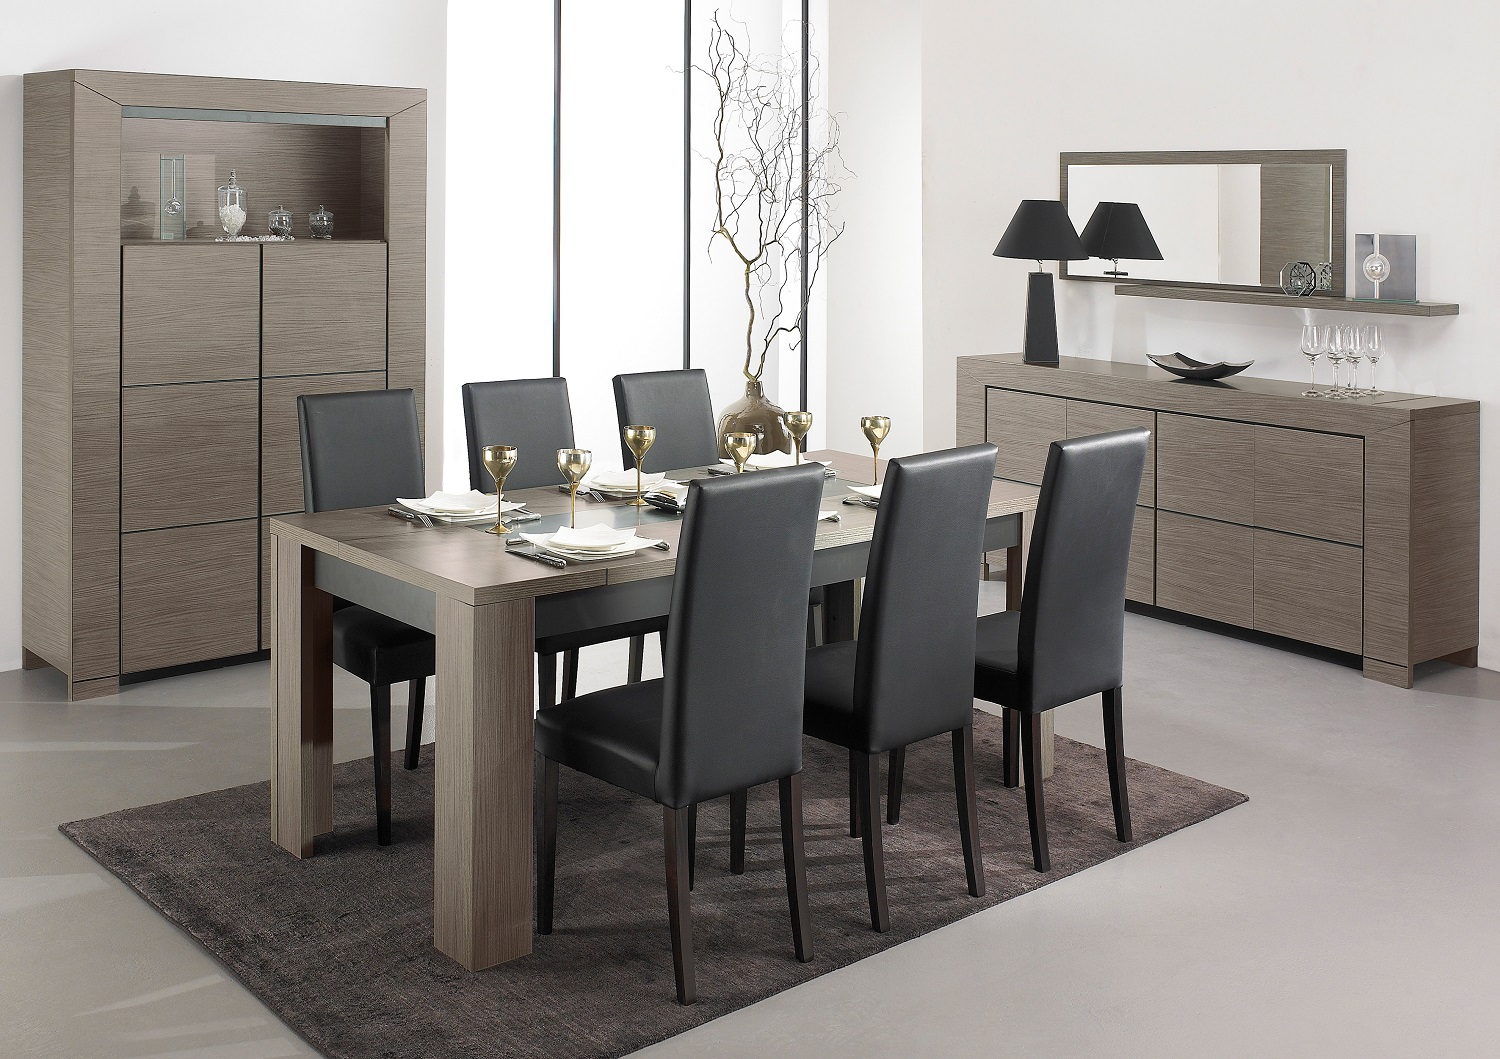 Bilrich Furniture - Hanna Dining Table